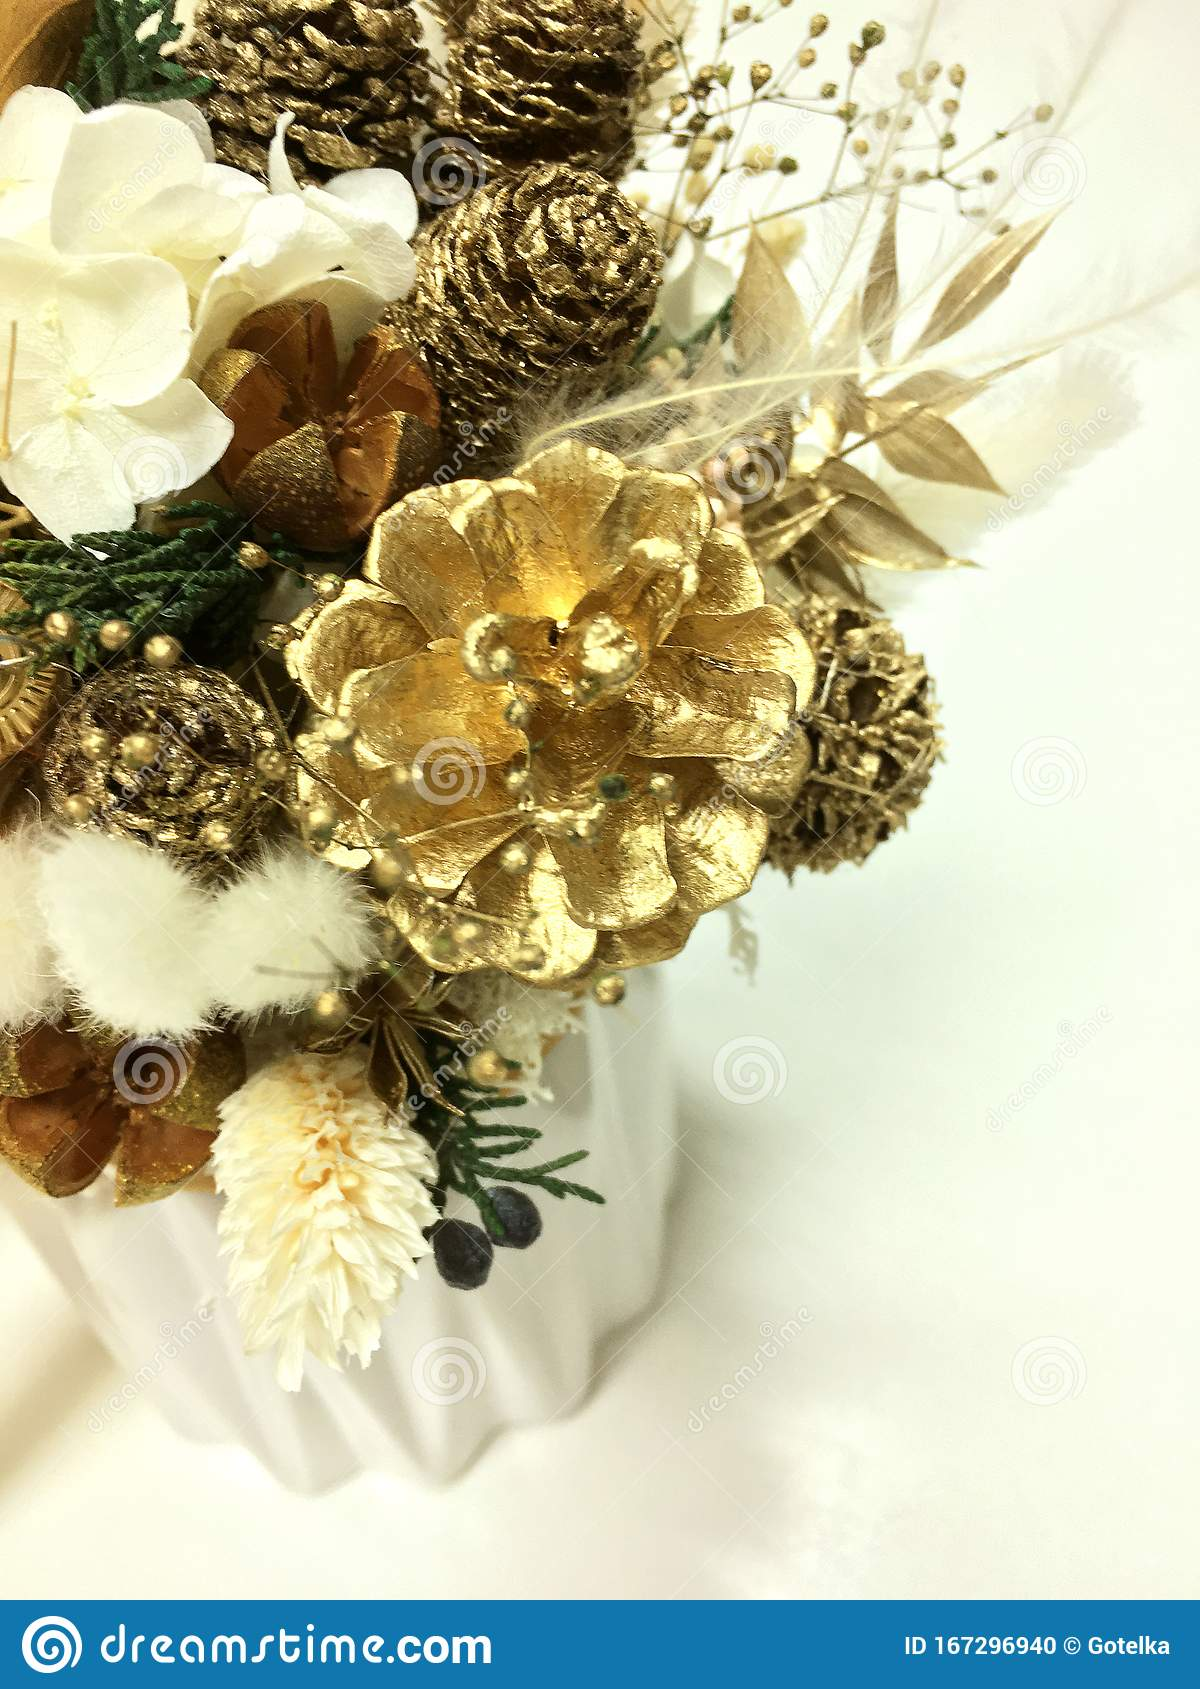 Christmas Flowers Composition Gold And White Color White Preserved Hydrangea Gold Pine Cones Natural Spruce Branches Stock Photo Image Of Nature Decor 167296940